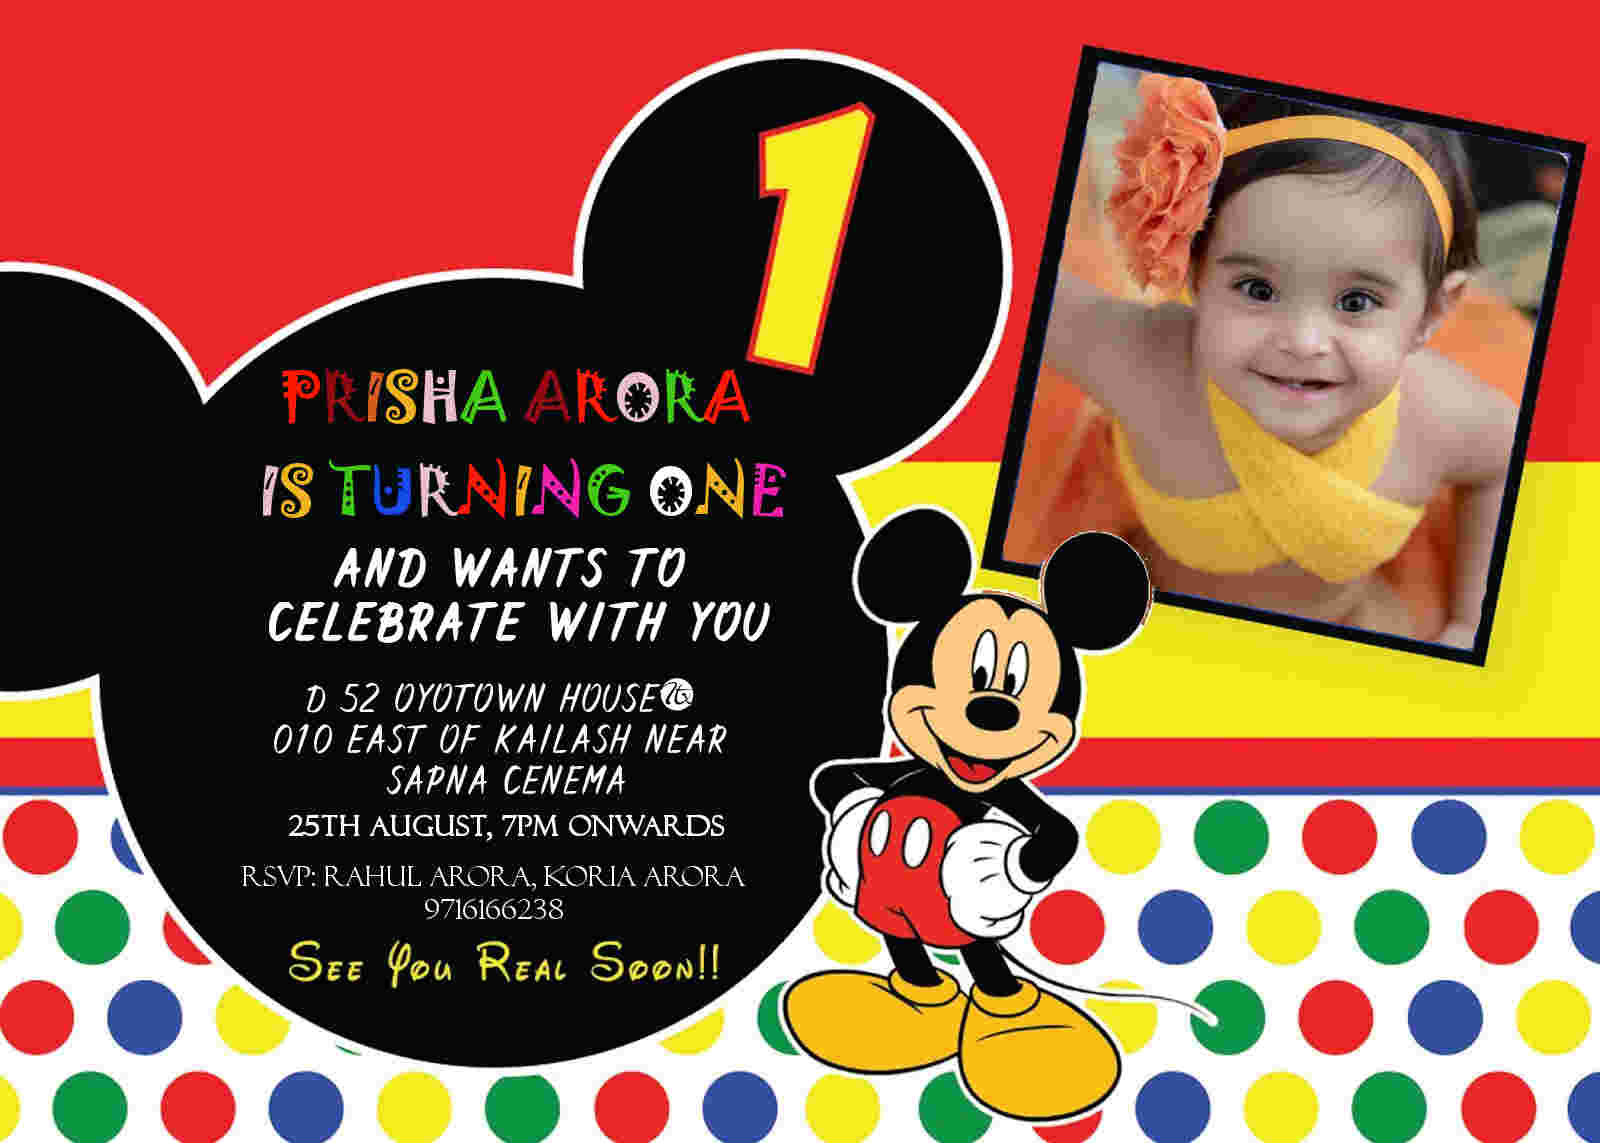 disney theme invite card for birthday party in Delhi, Gurgaon and faridabad